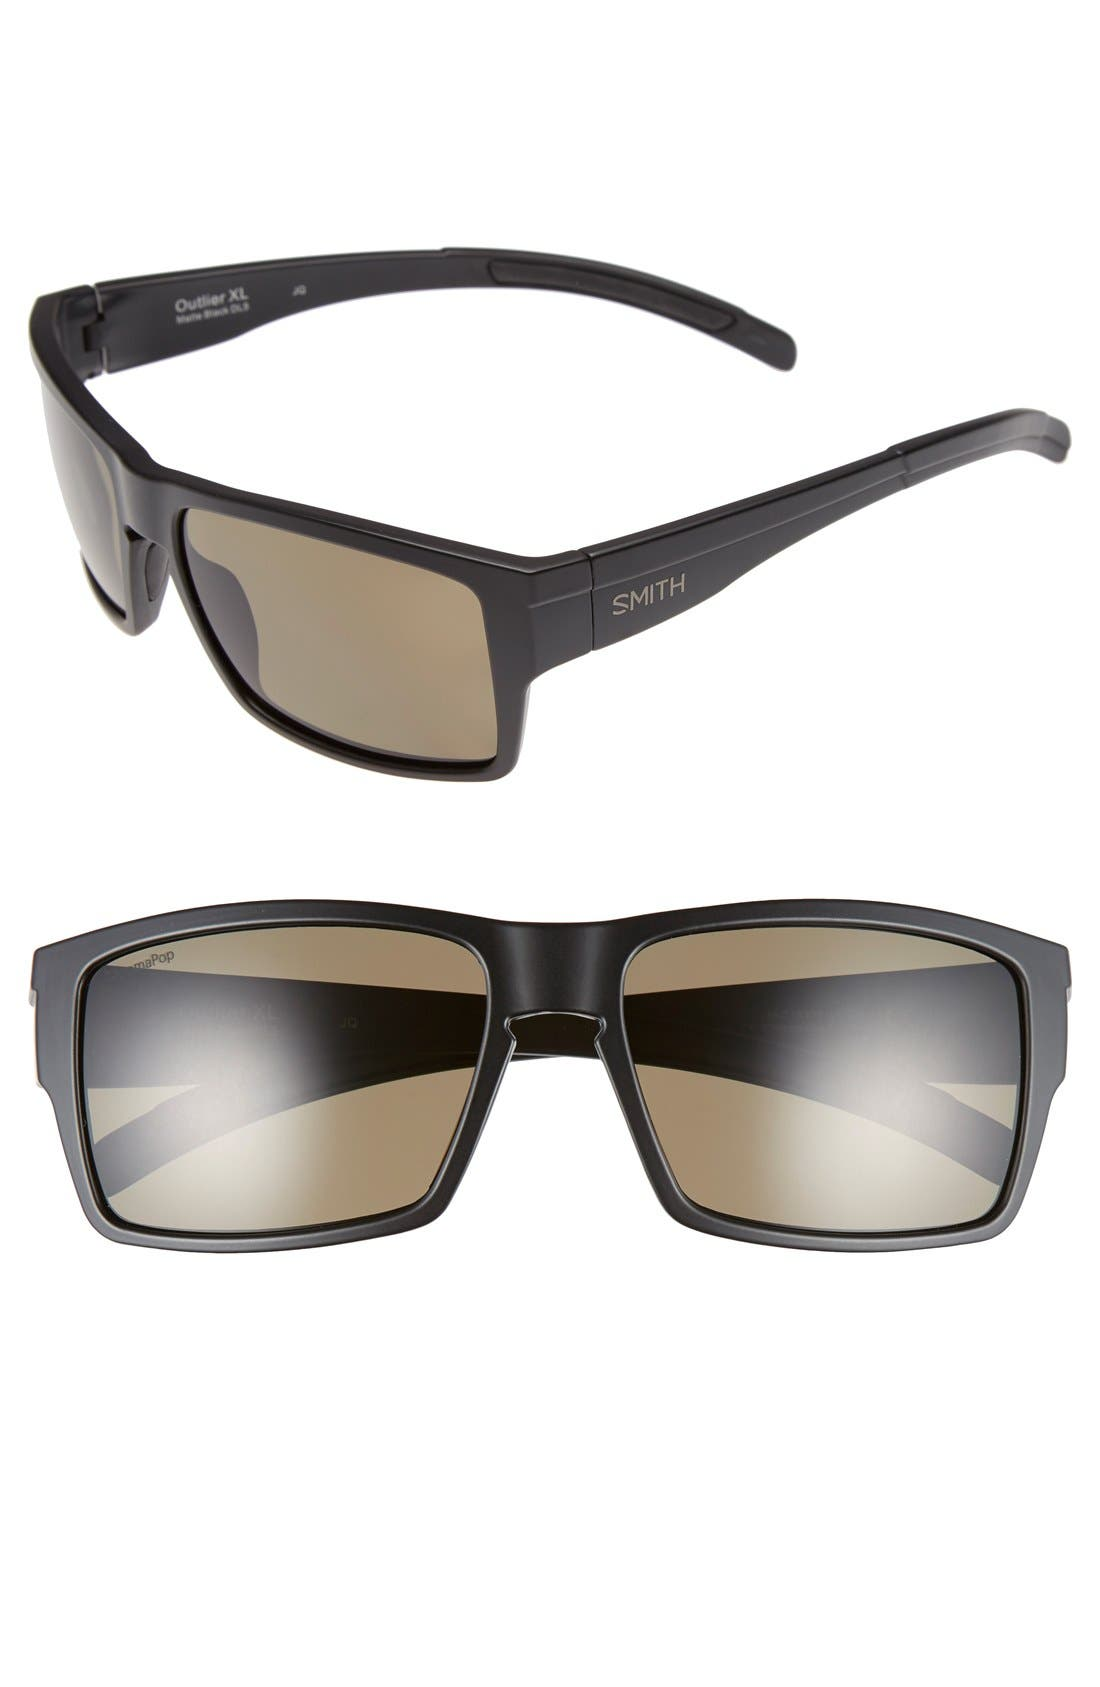 82a211311b Smith  Outlier Xl  56Mm Polarized Sunglasses - Matte Black  Polarized Green